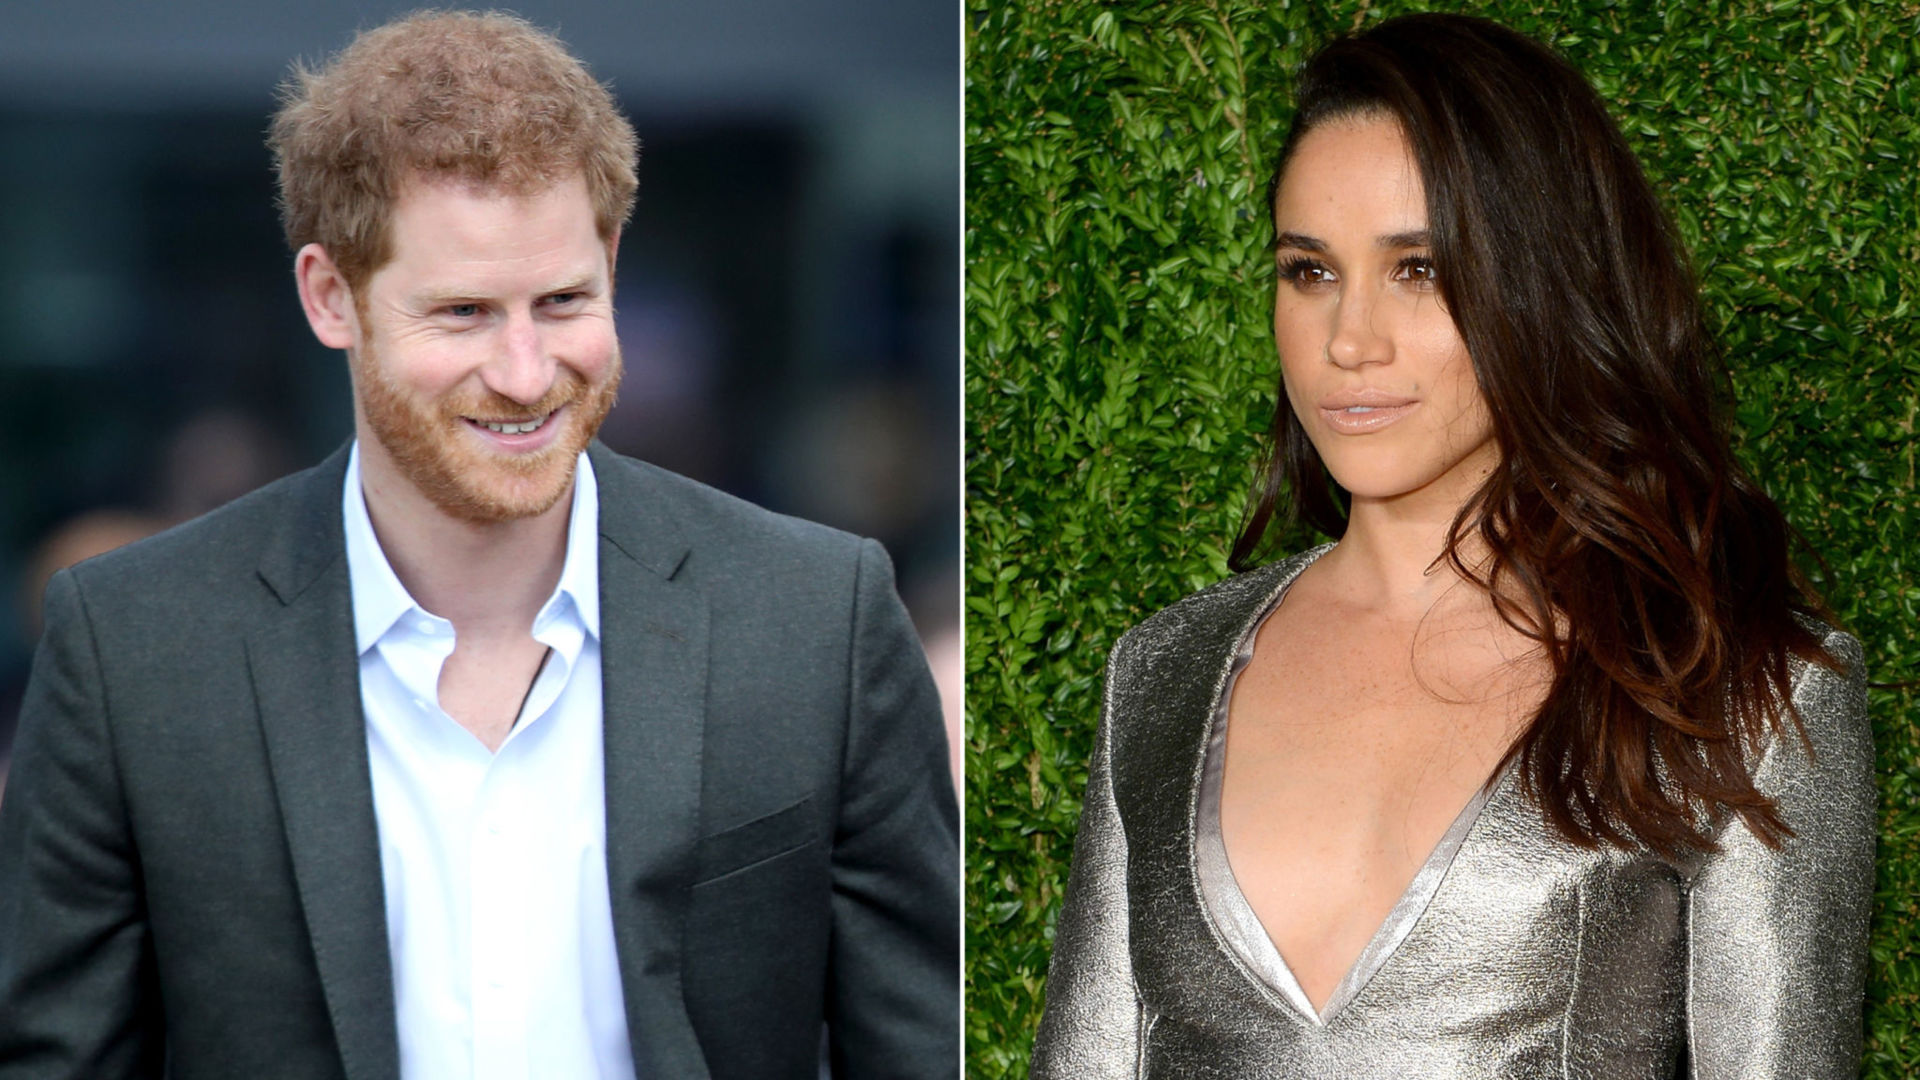 Who is prince harry dating 2017